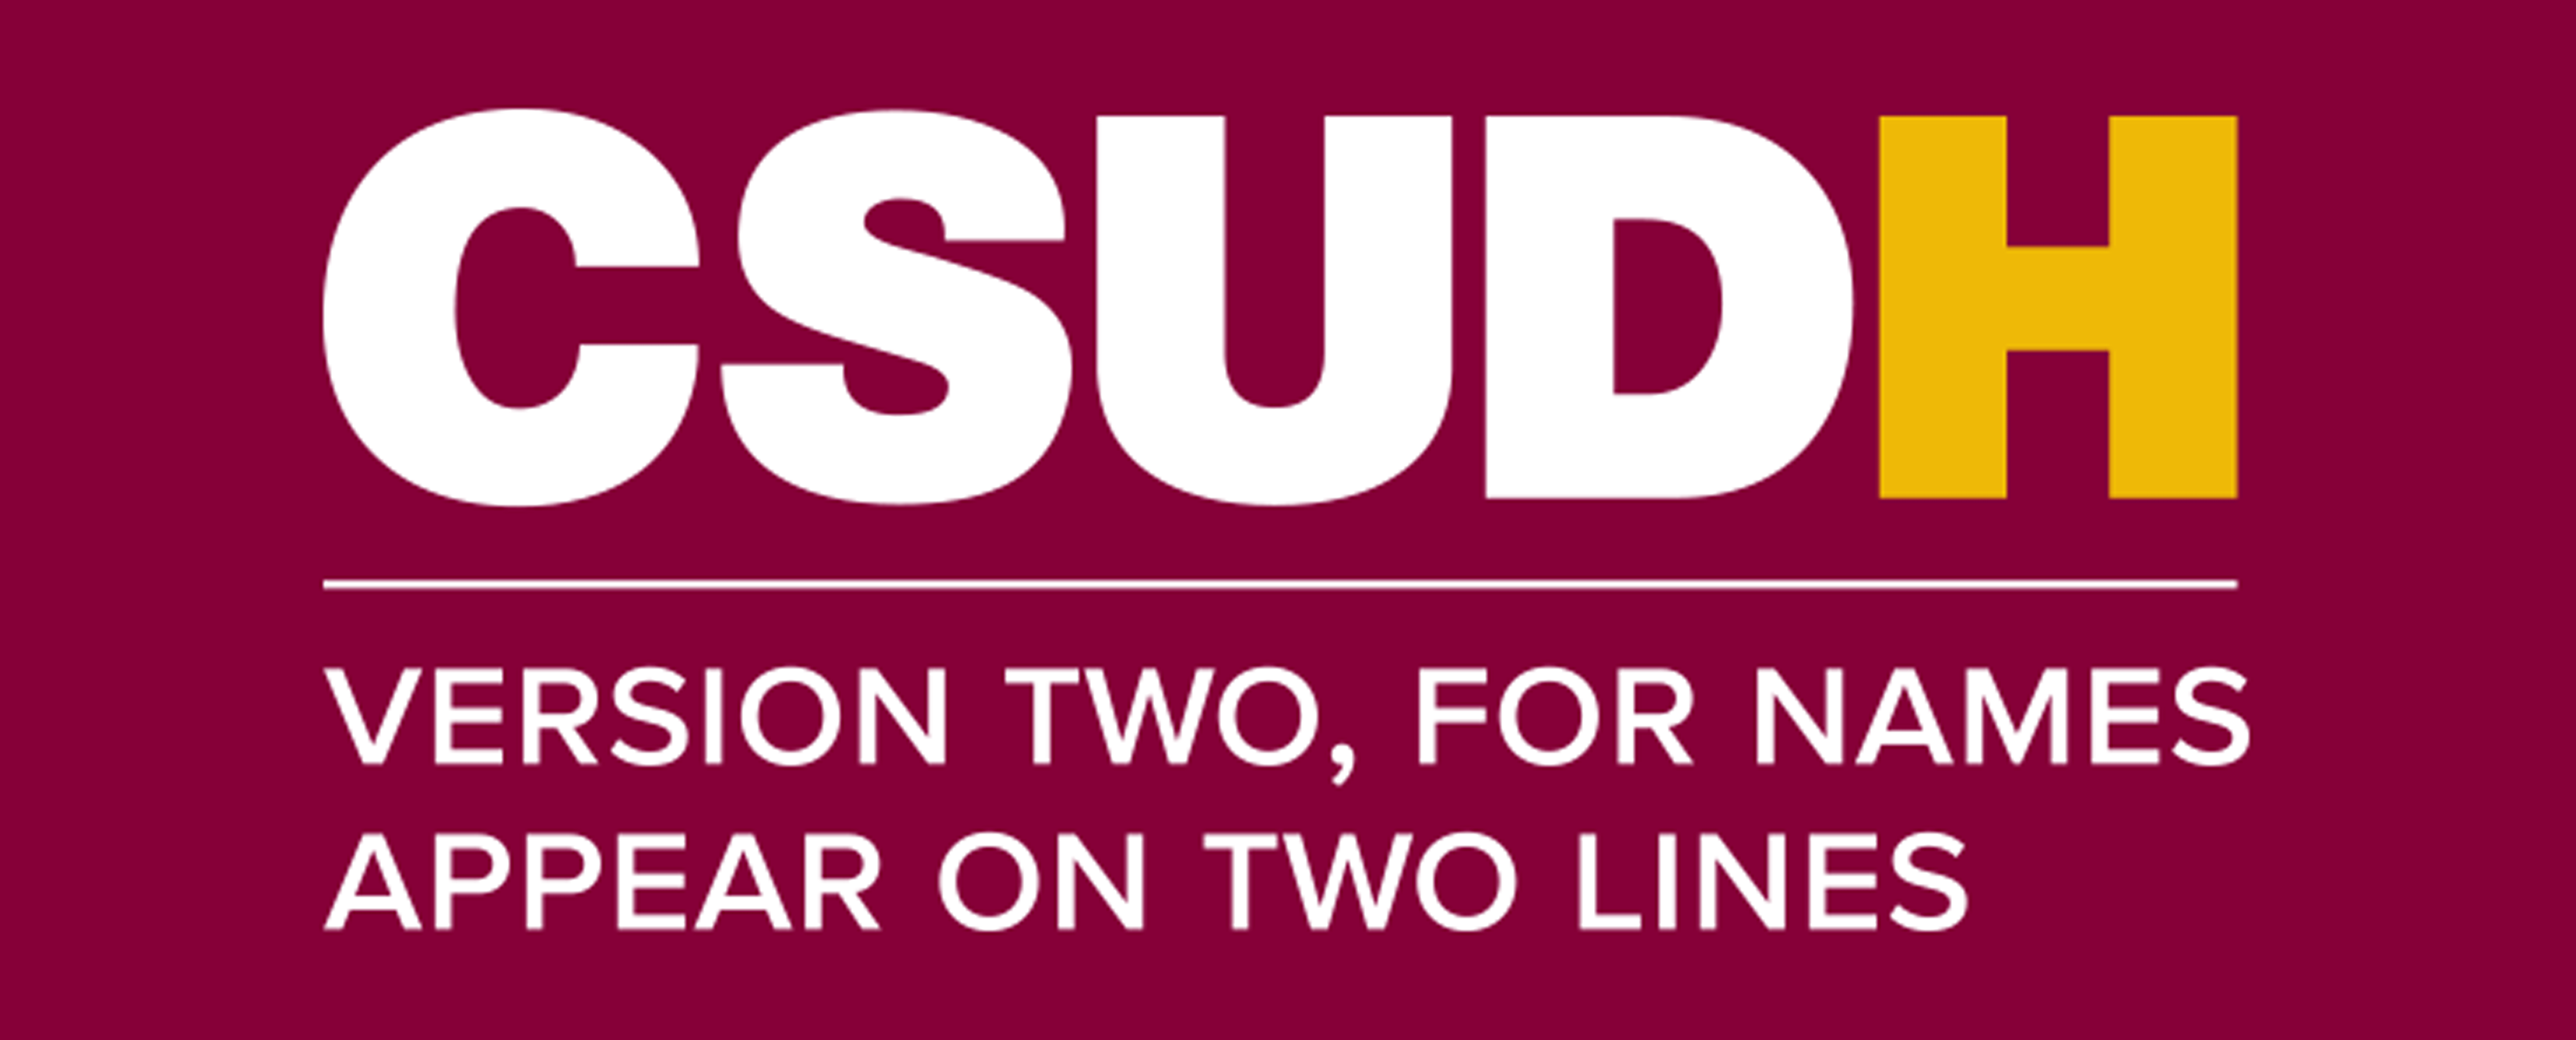 CSUDH endorsed logo stacked left aligned 2 lines white and yellow text on burgundy background